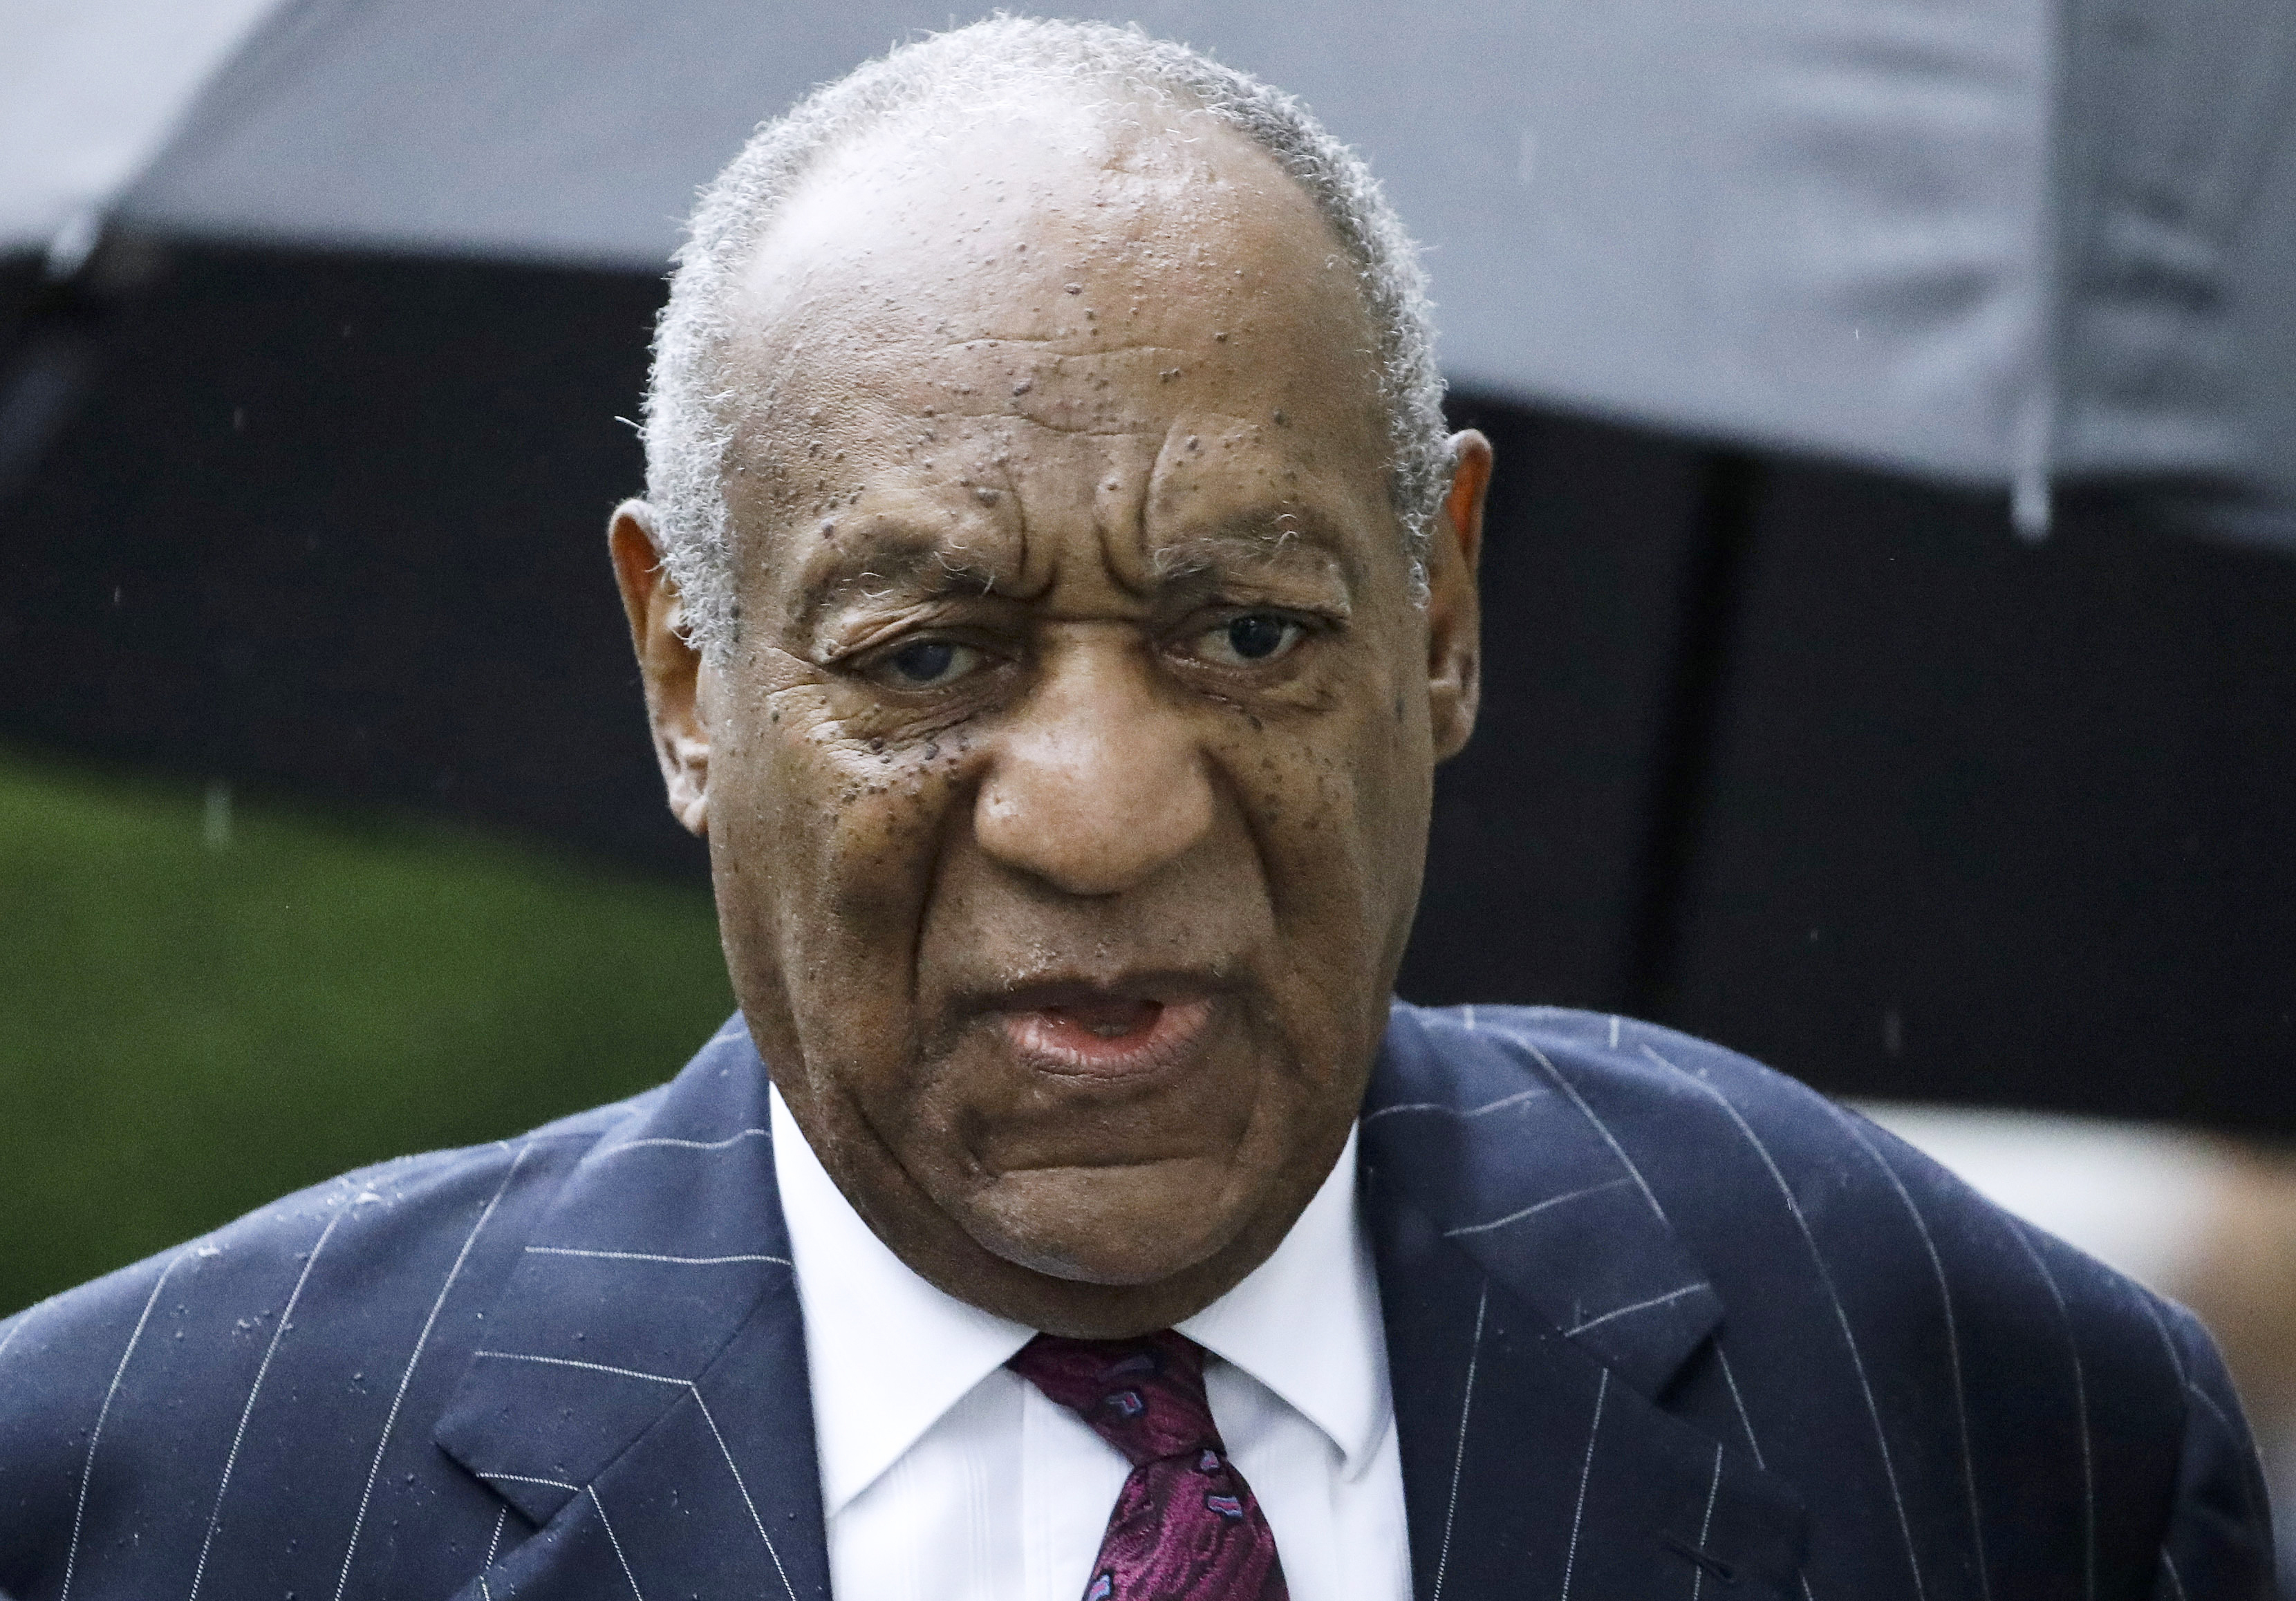 Bill Cosby arrives for a sentencing hearing following his sexual assault conviction at the Montgomery County Courthouse in Norristown, Pa., on Sept. 25, 2018.